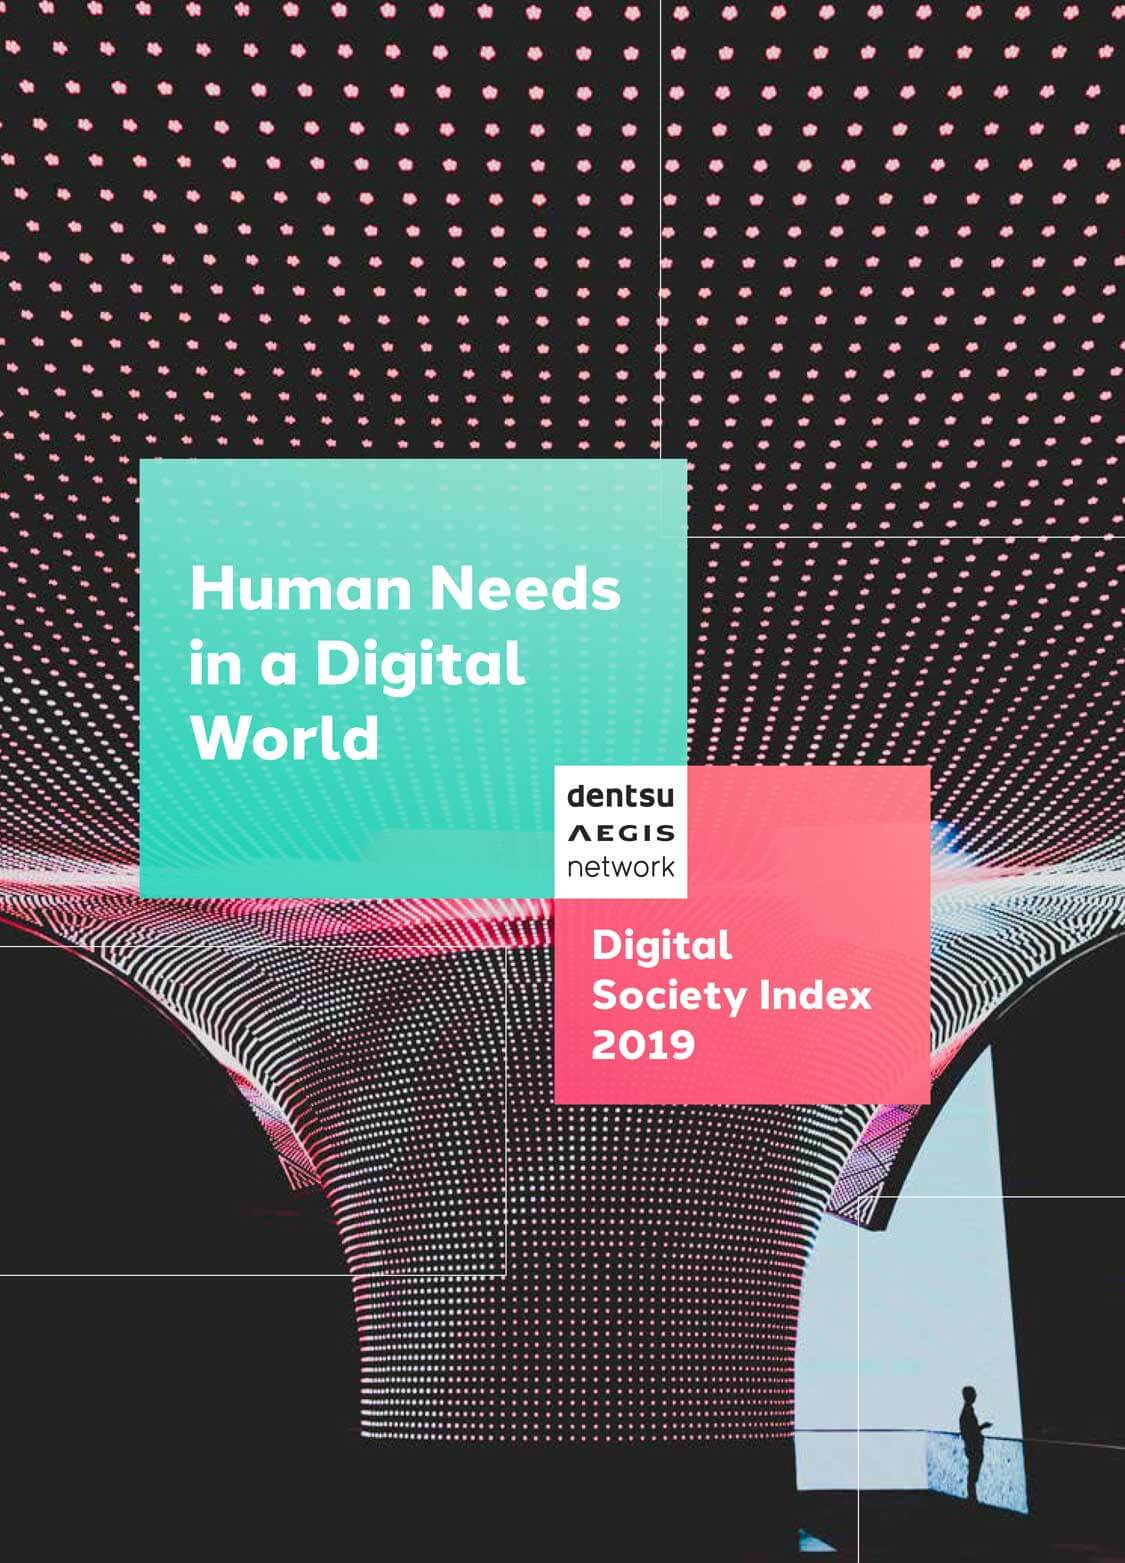 Digital Society Index 2019